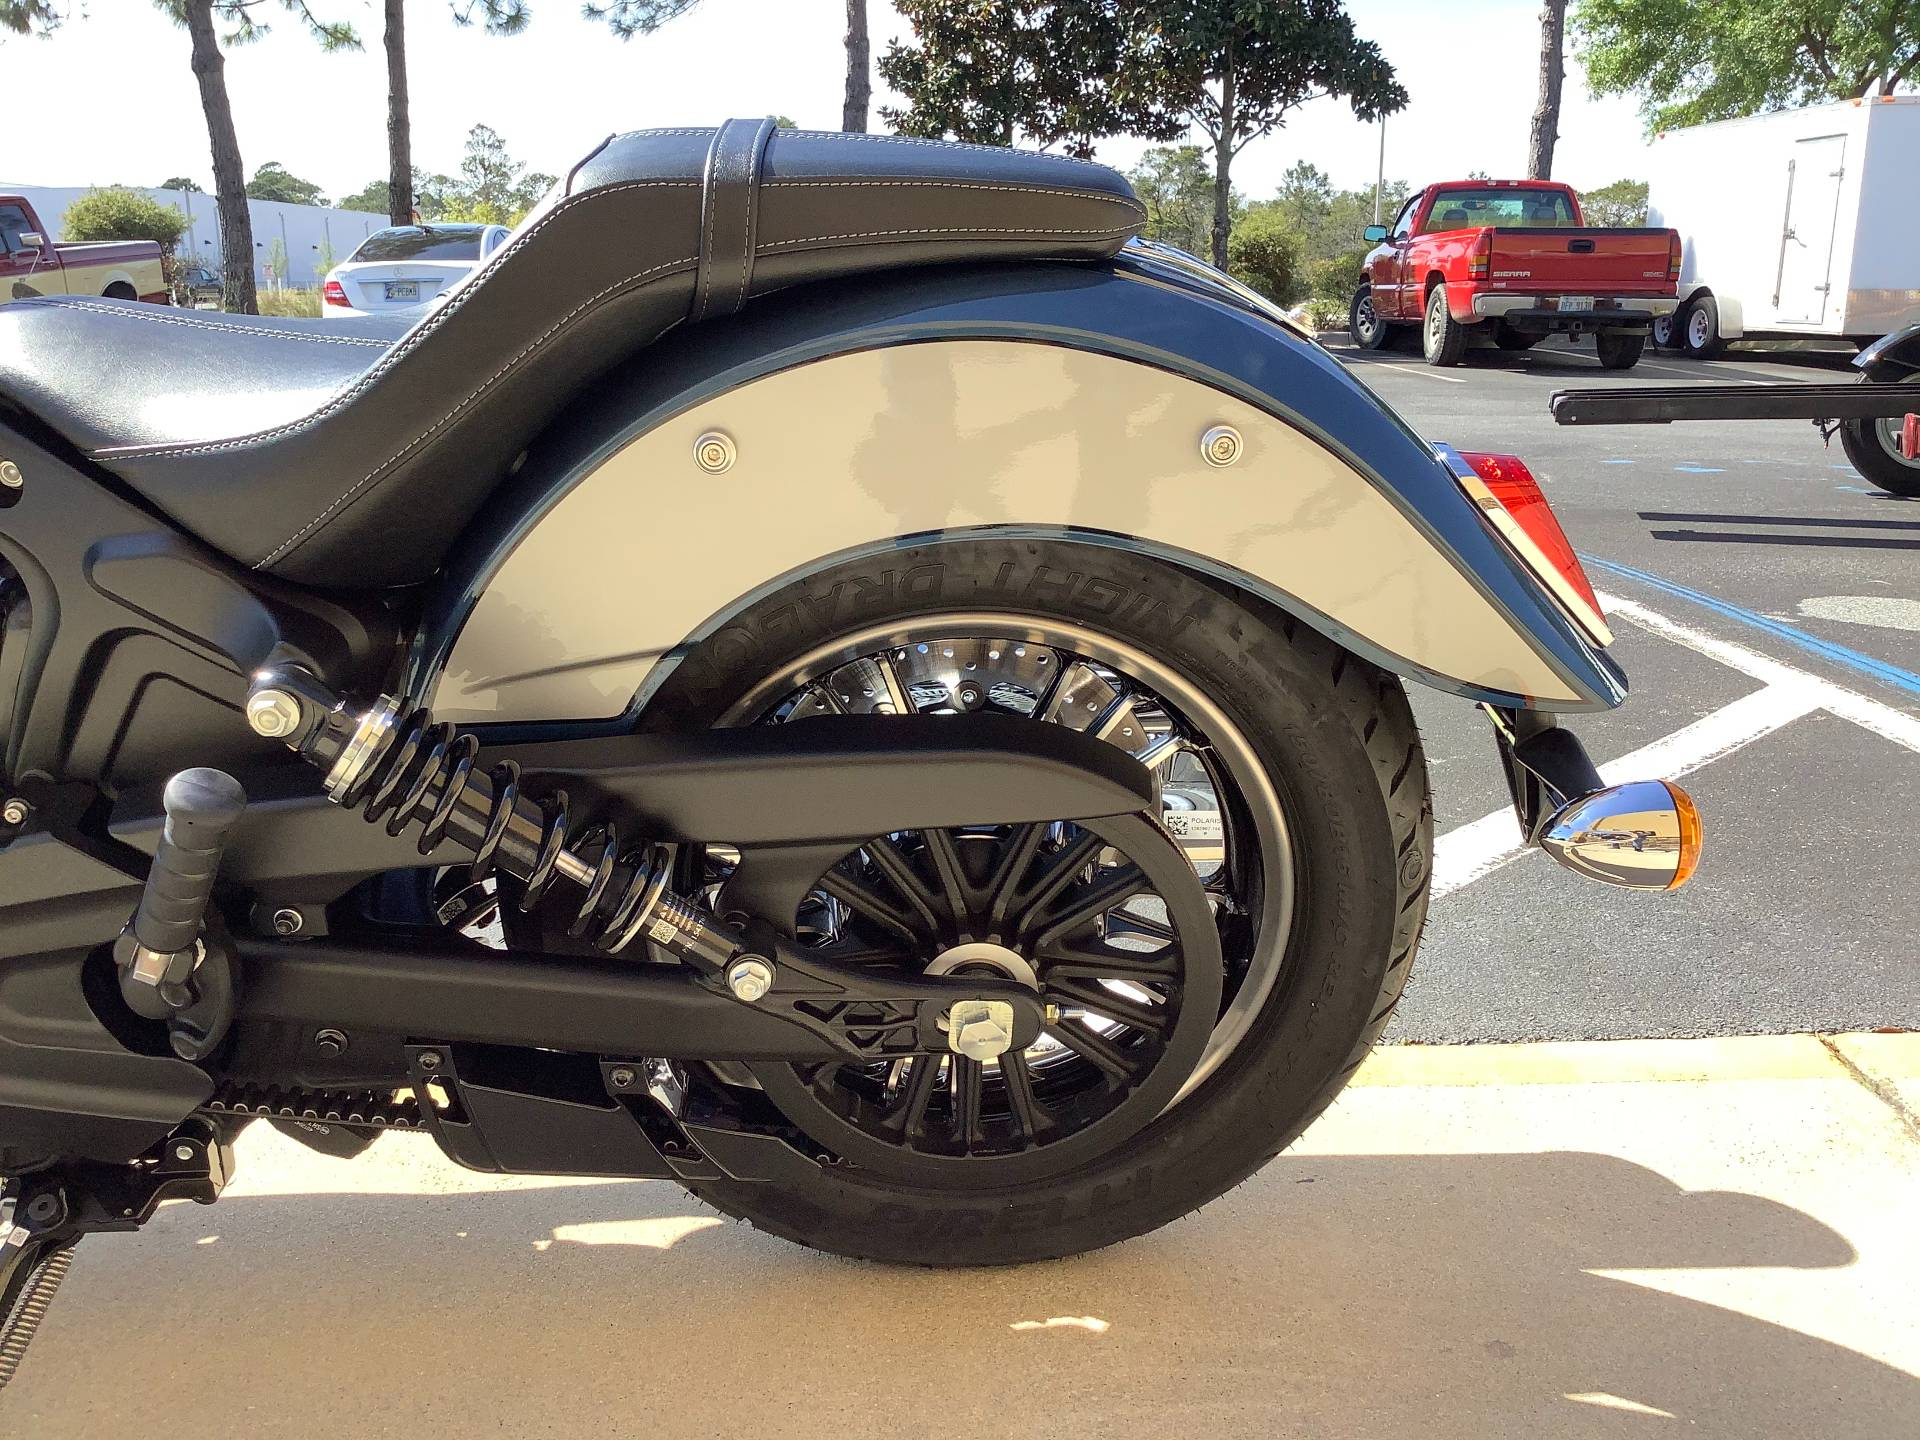 2021 Indian SCOUT ICON ABS in Panama City Beach, Florida - Photo 9